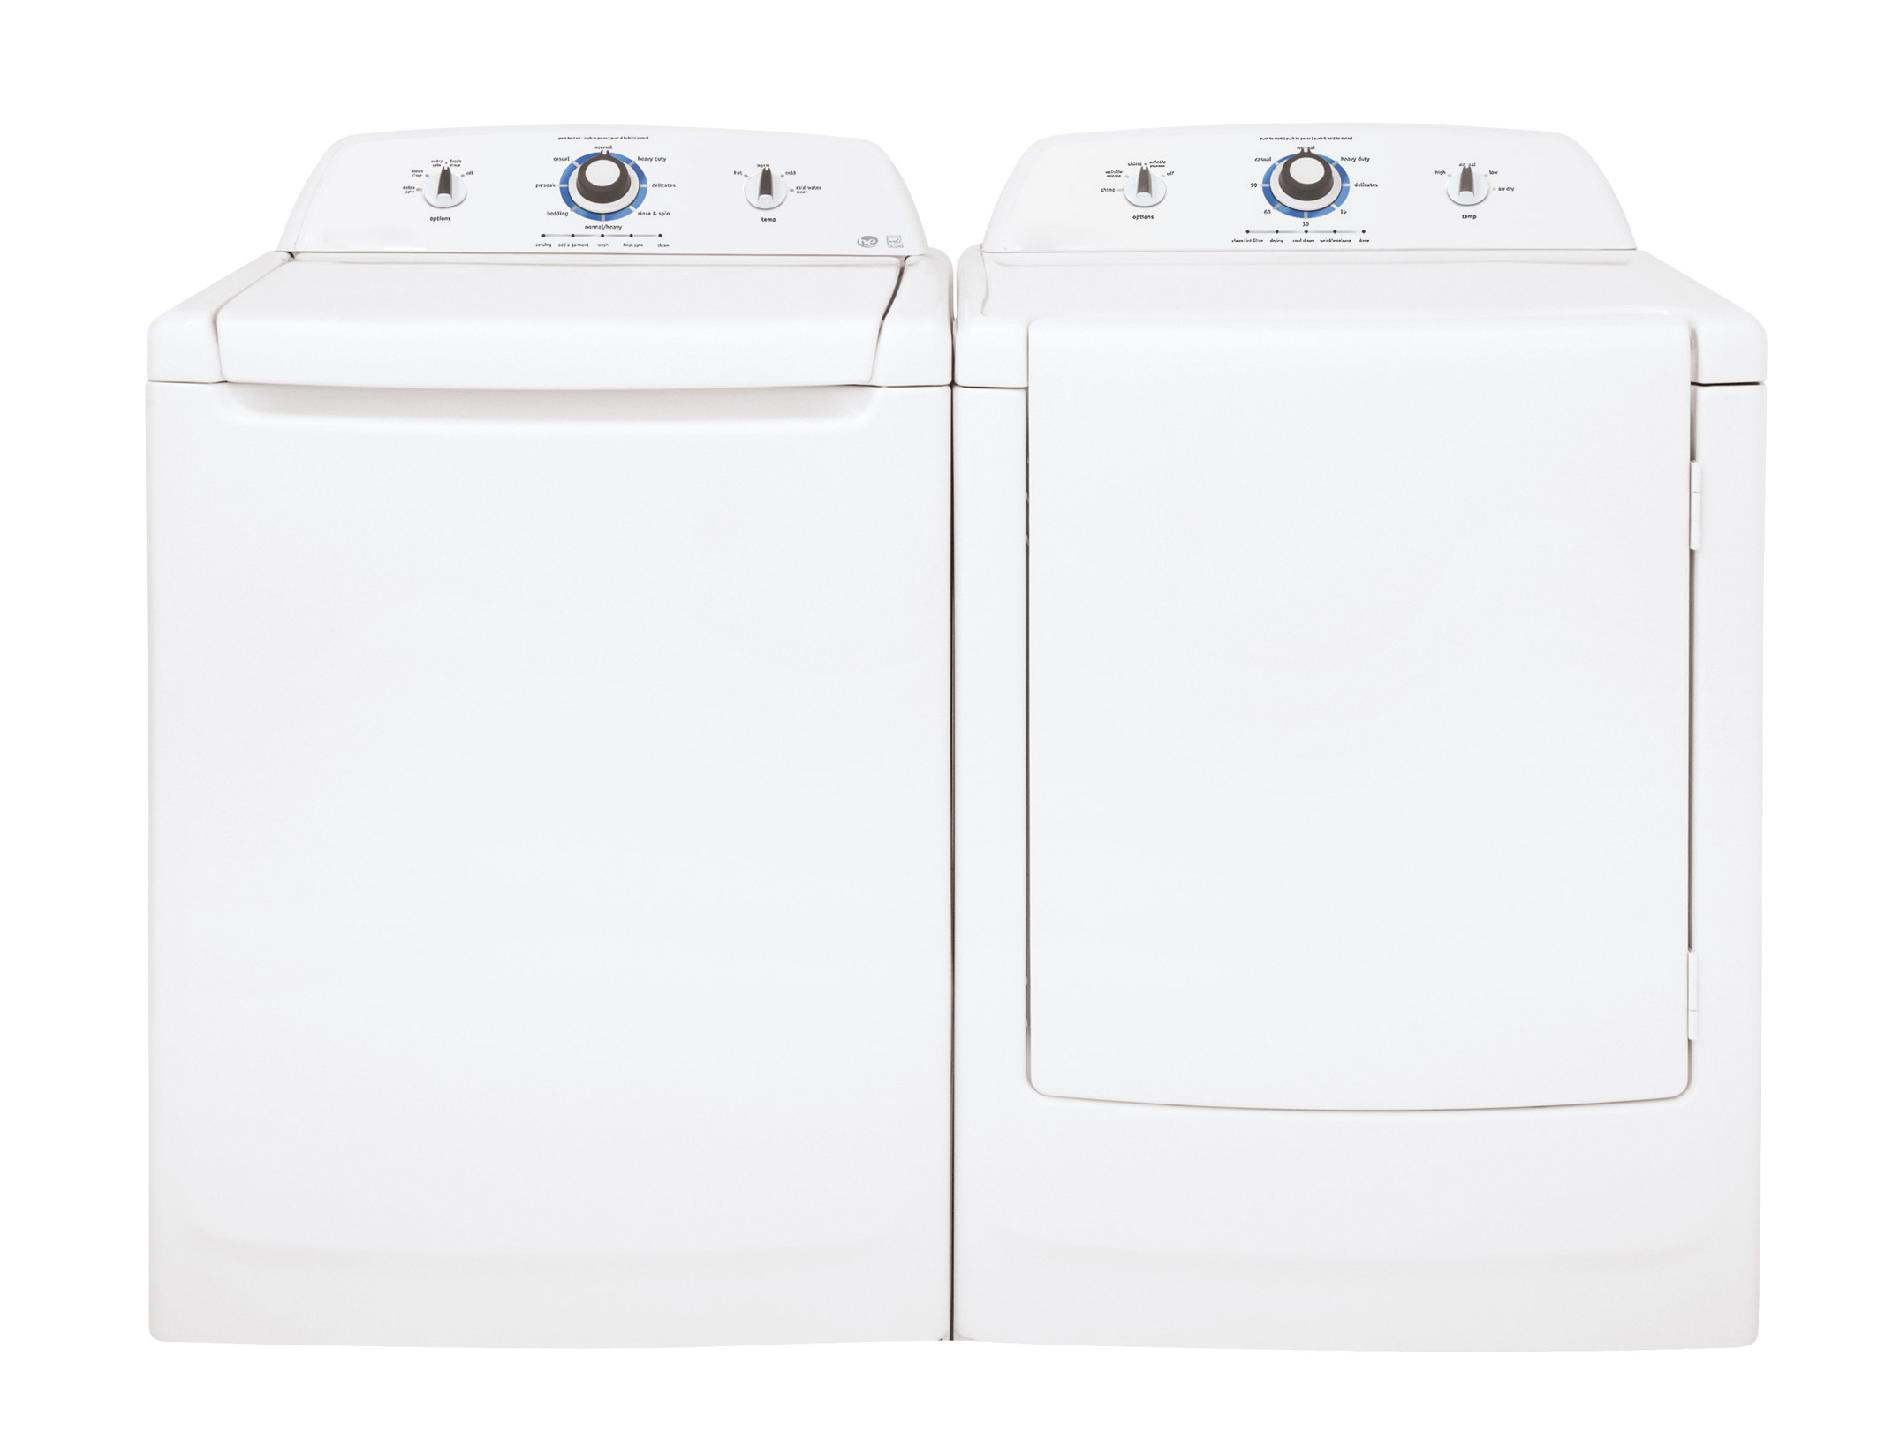 Frigidaire Frigidaire 3.4 cu. ft. Top-Load High Efficiency Washer - White